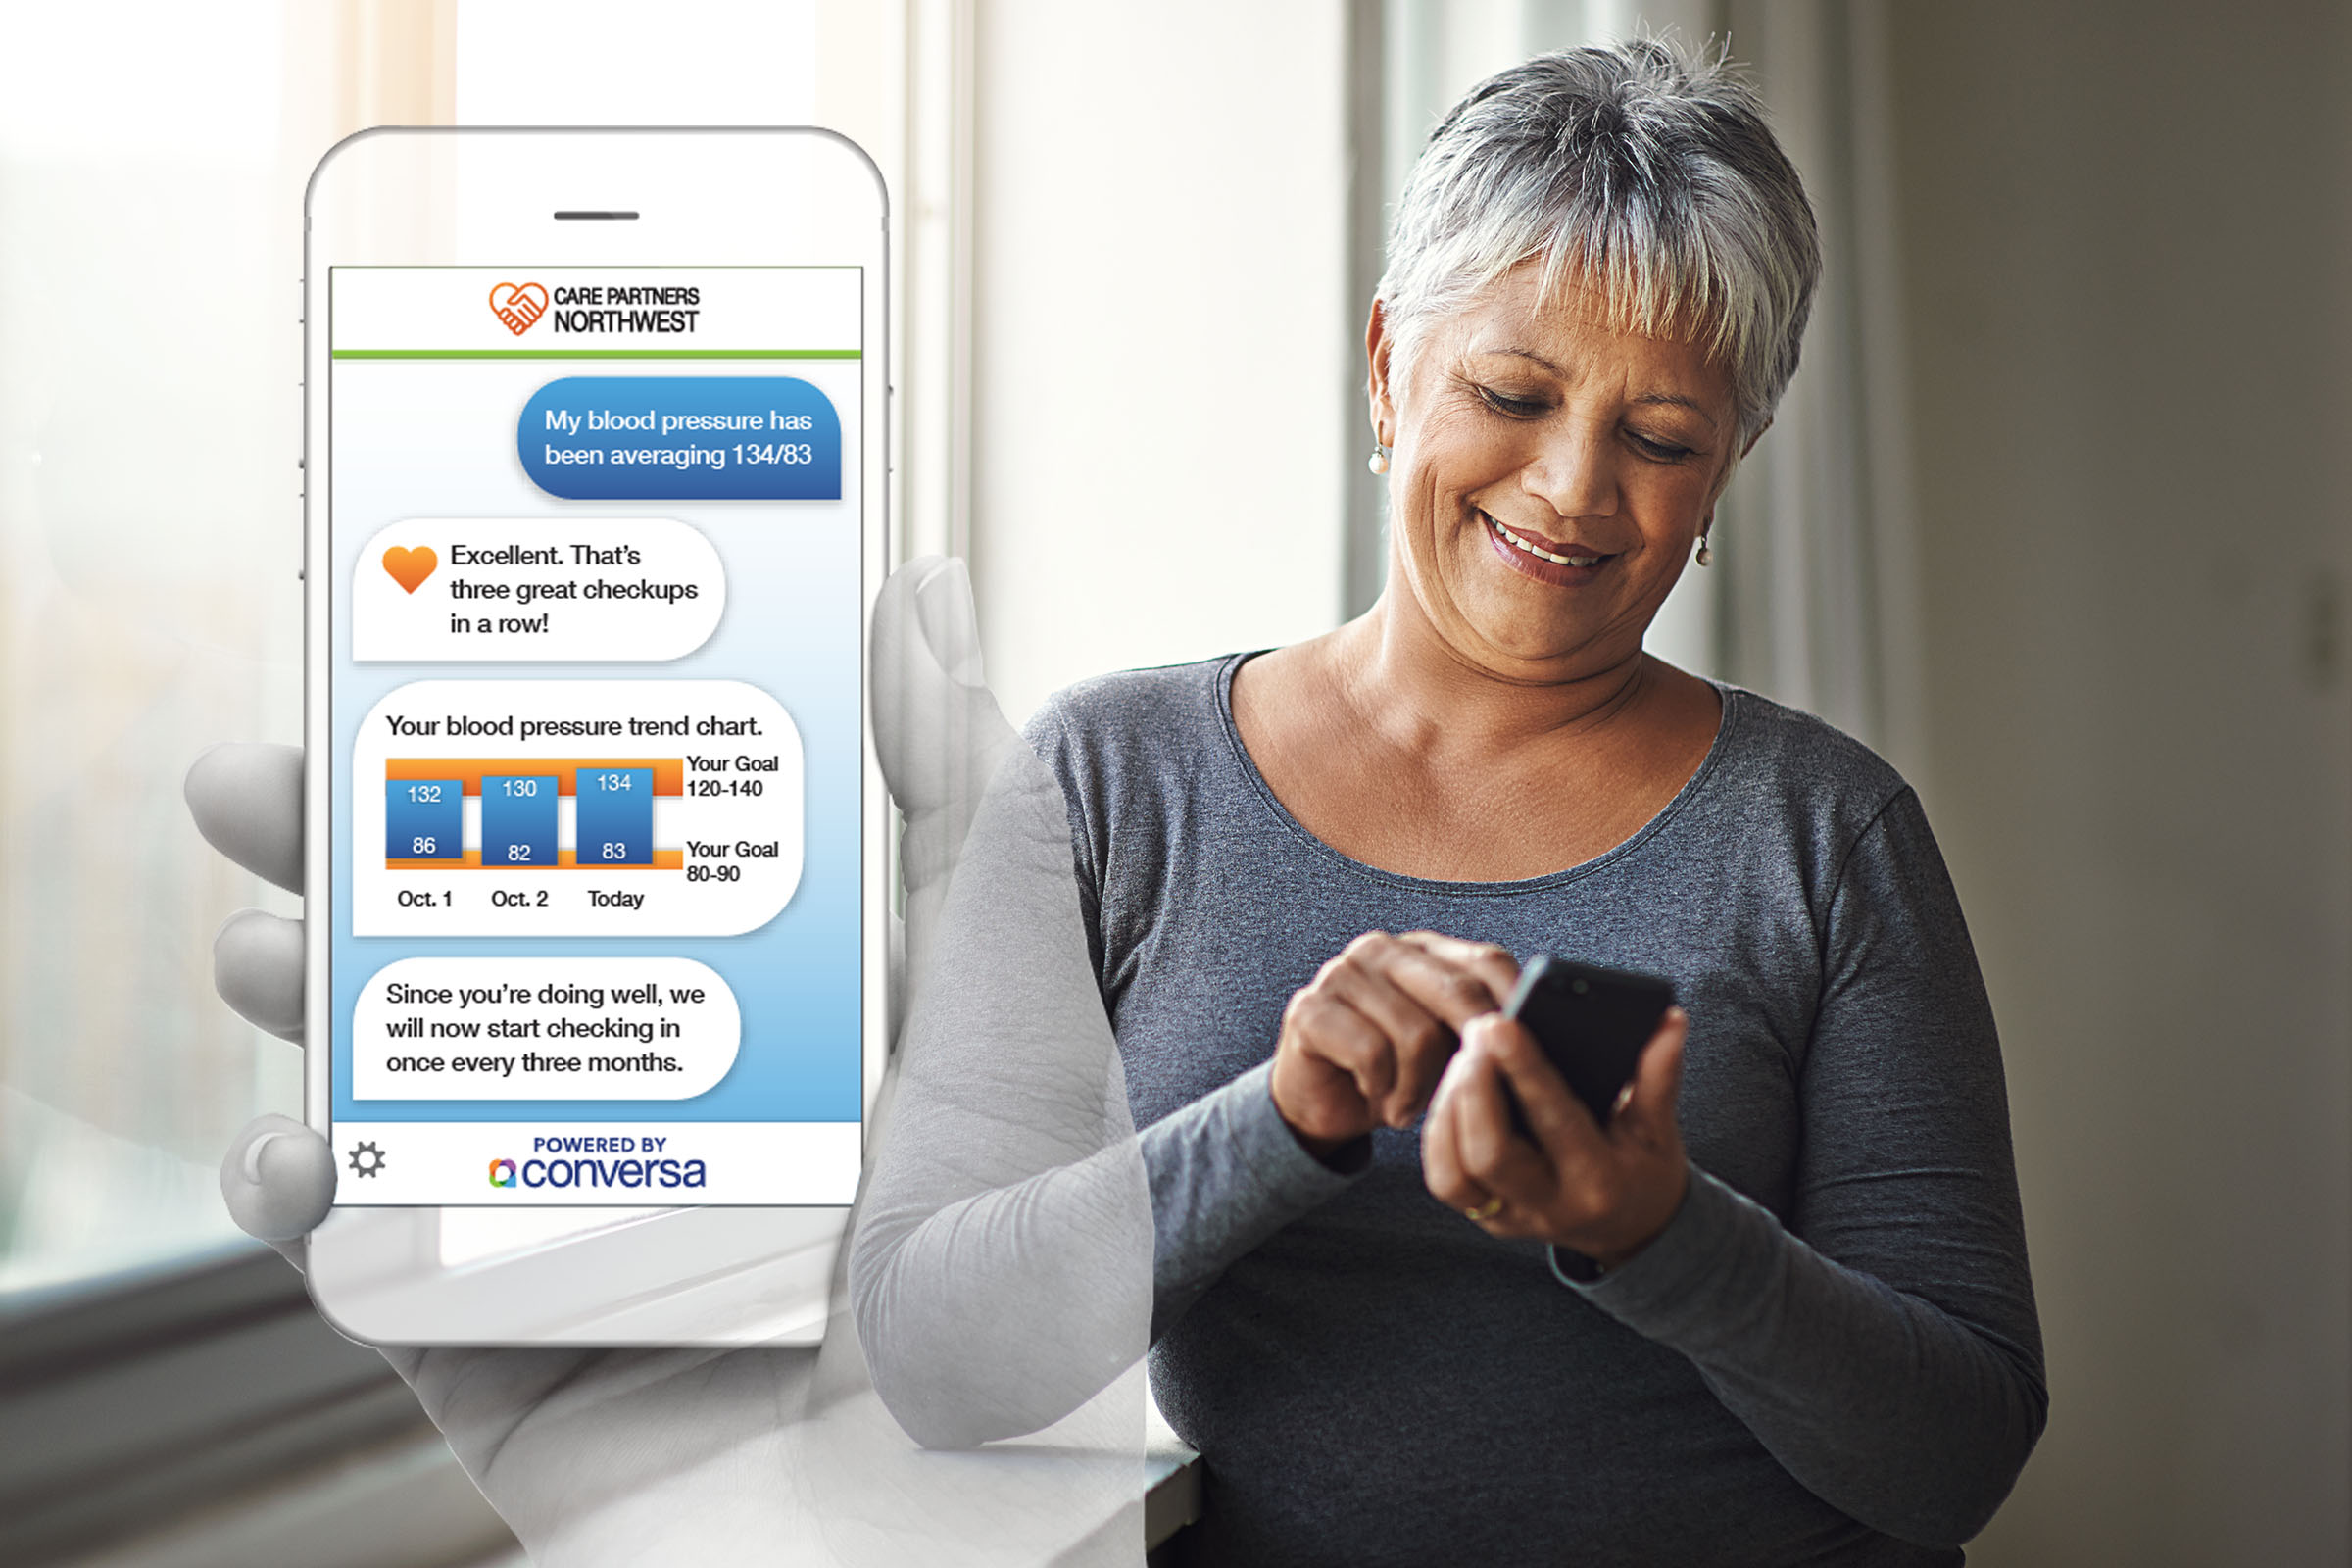 Conversa automated patient engagement